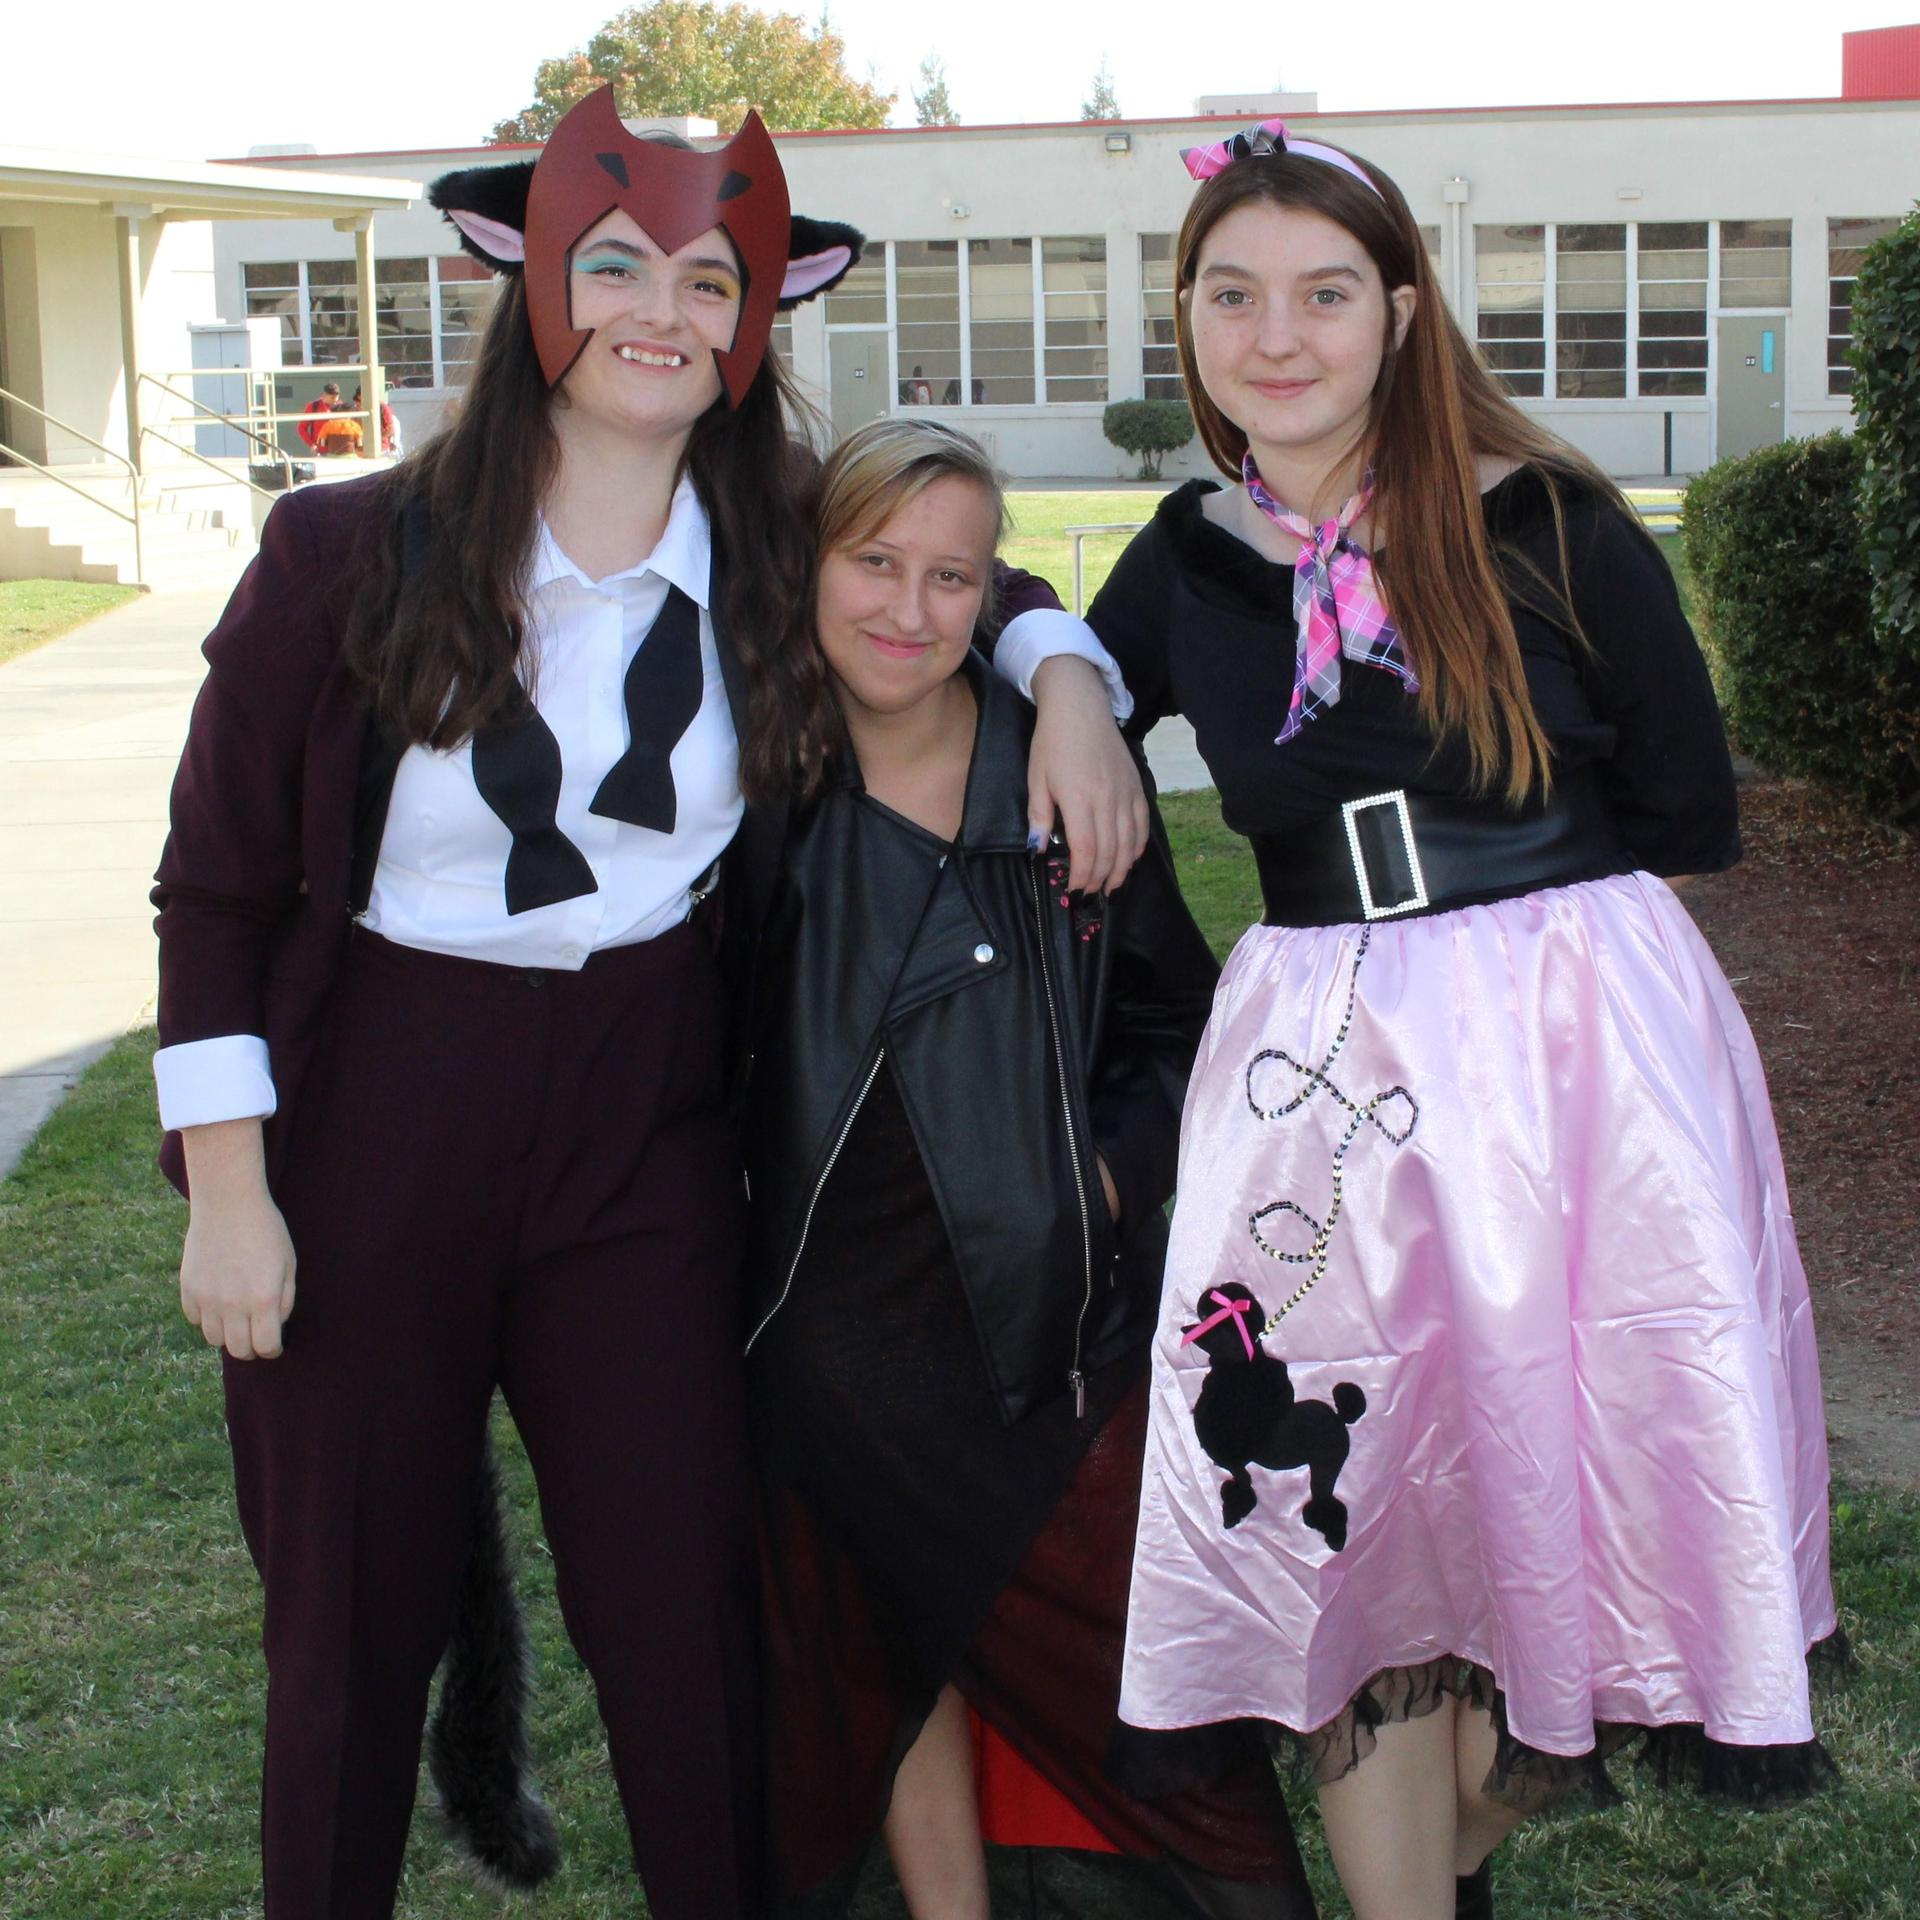 Halle Freitas as a cow, Aleyah Frank as a vampire, Cloie Derring as a pink lady from Grease